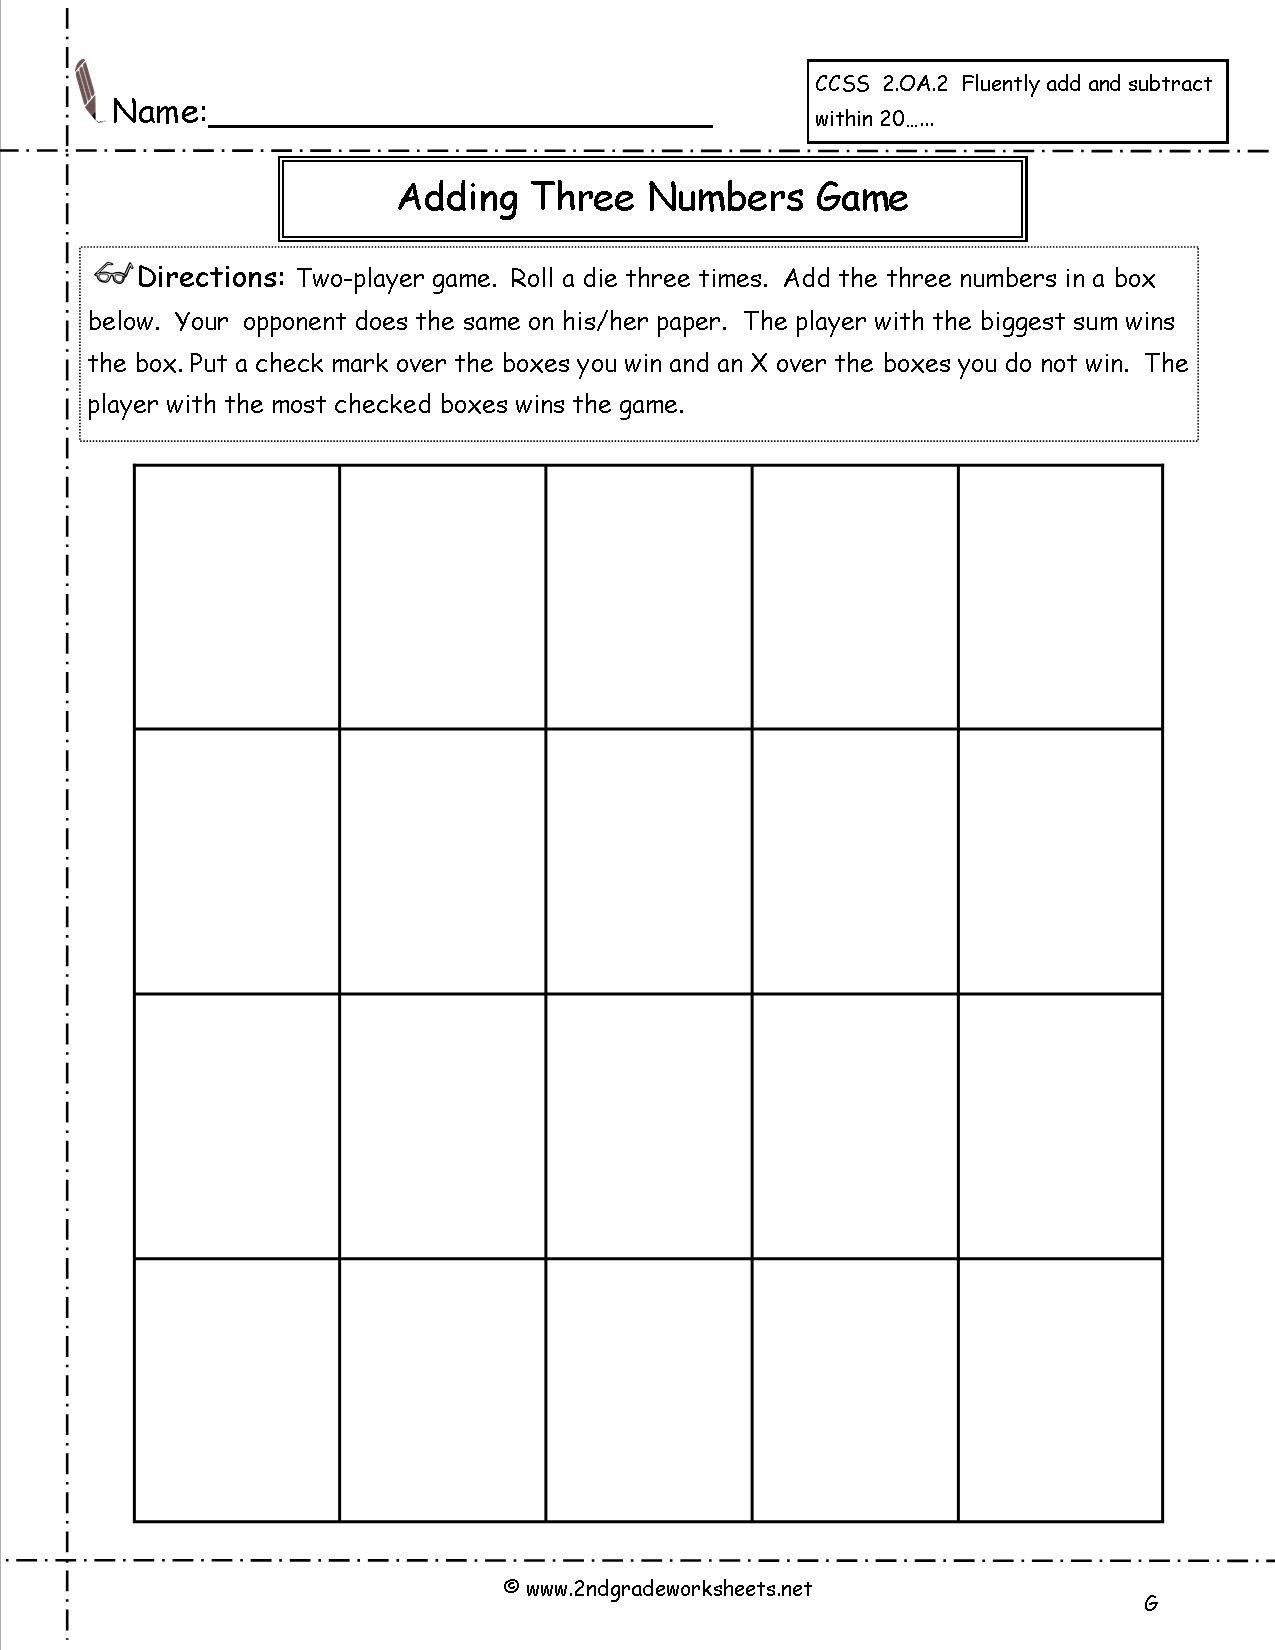 Adding Three Numbers Worksheet Add Three Numbers Worksheet